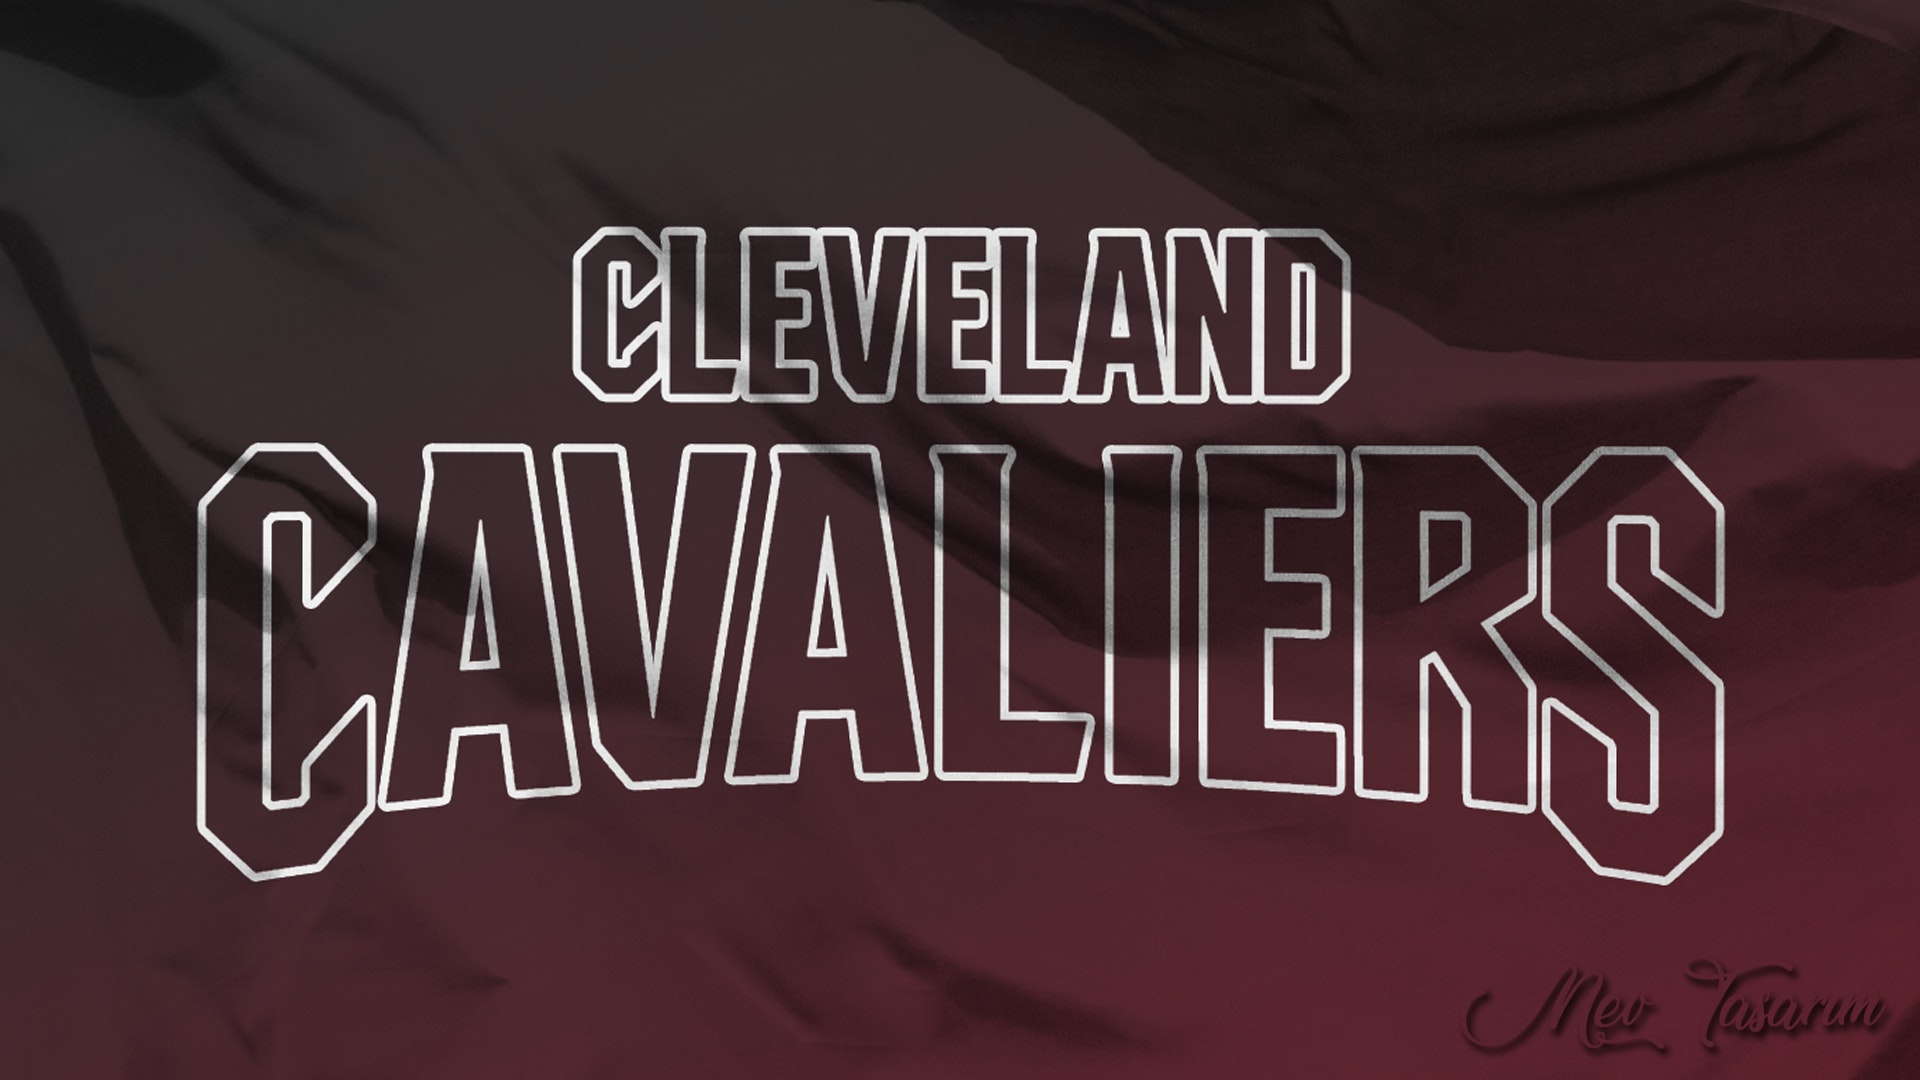 Free Stock Photo Of Cavaliers Cavs Cleveland